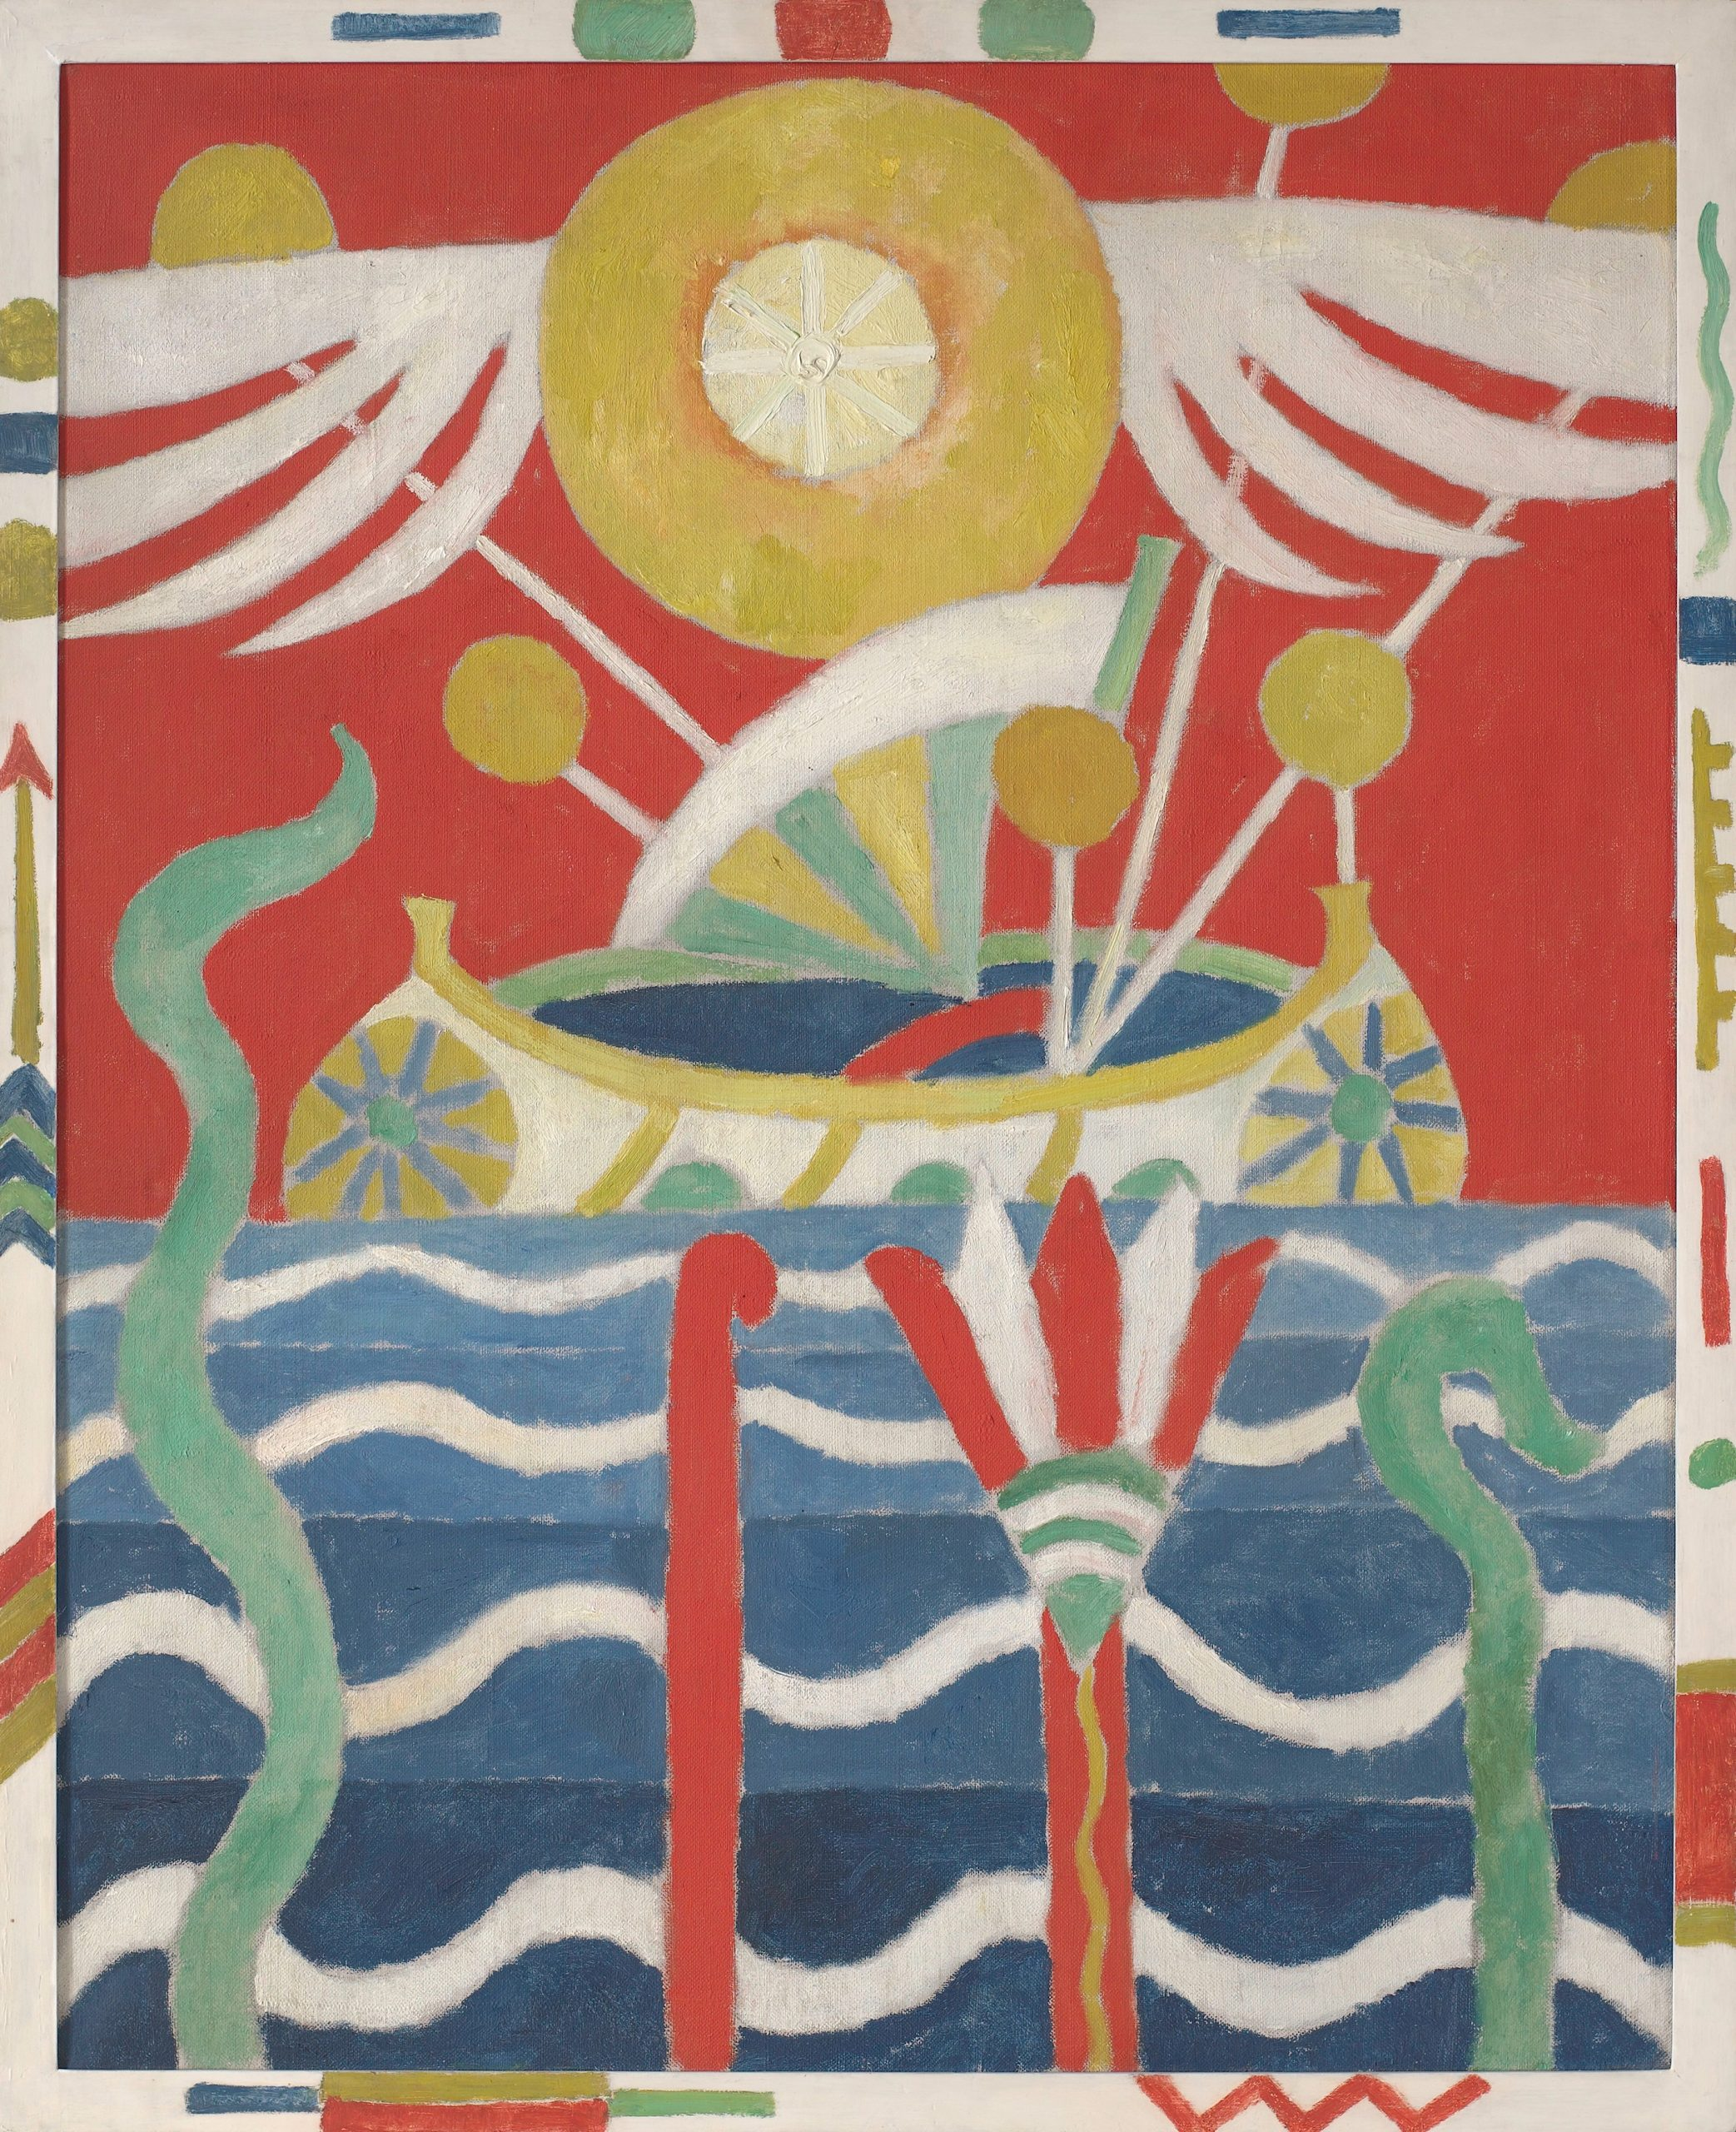 A ship, blue and white waves with four emerging stylized plants, and a yellow sun with symmetrical white wings hovering above.